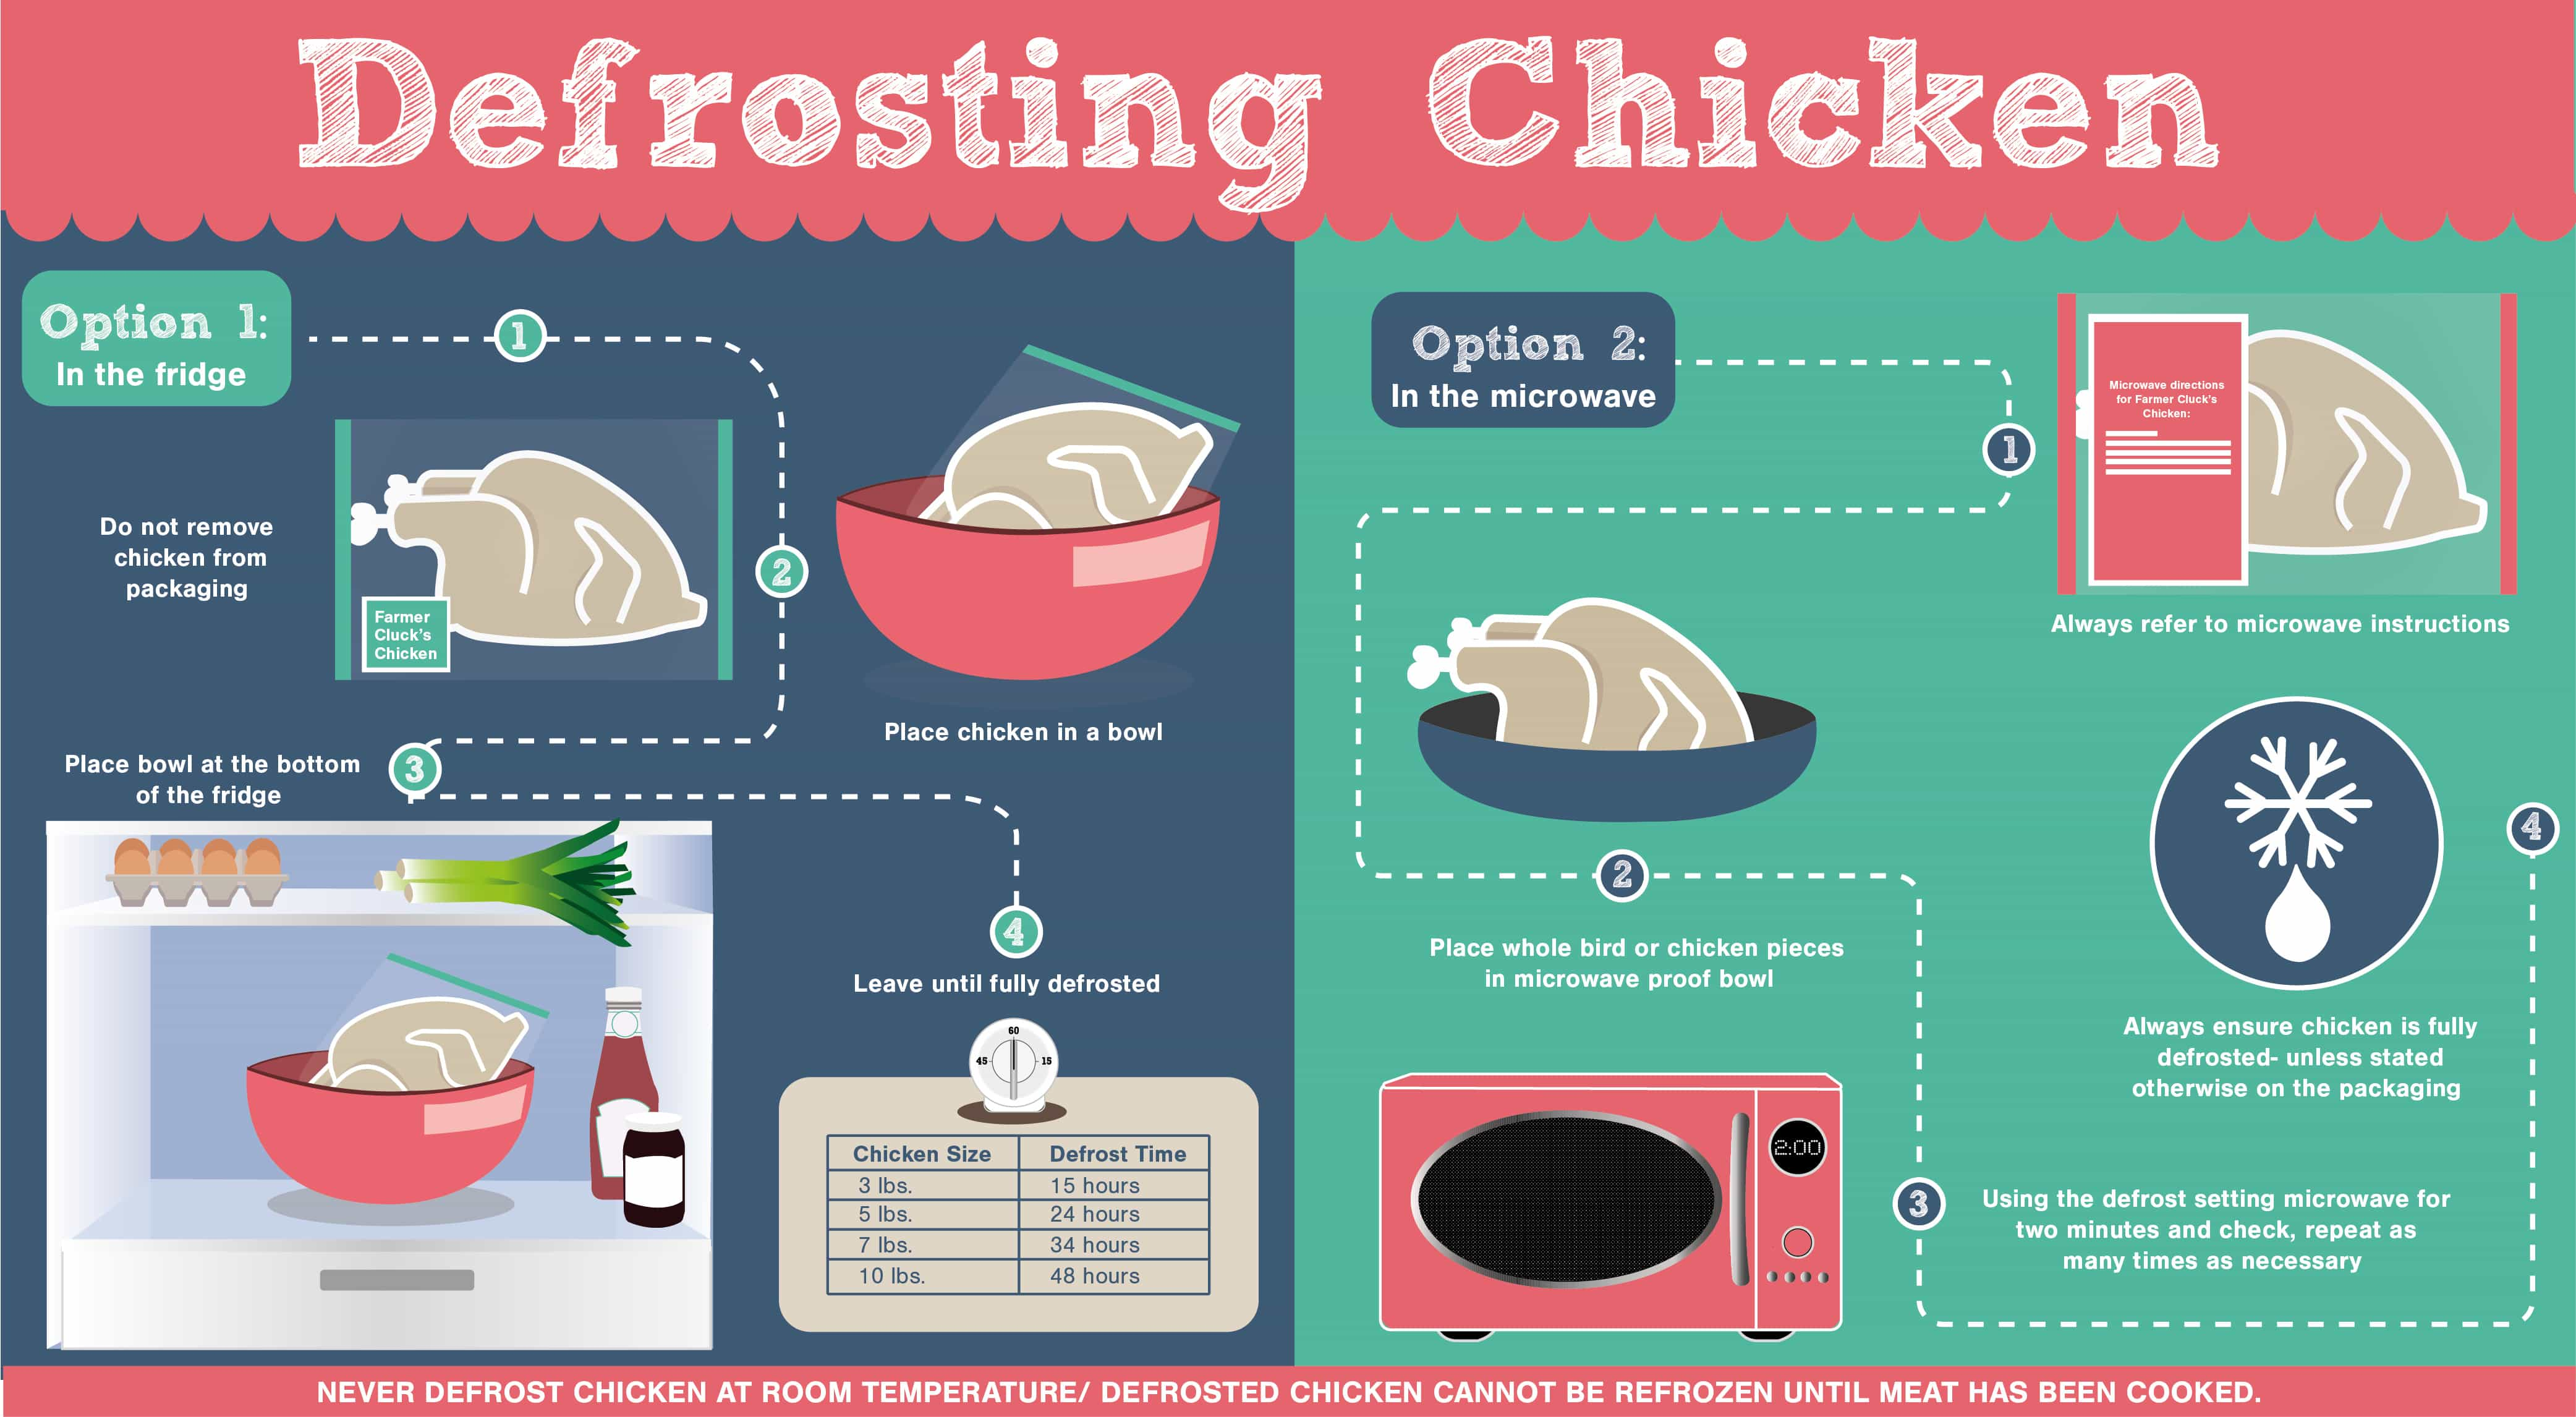 Defrosting Chicken - Fresh from the Freezer